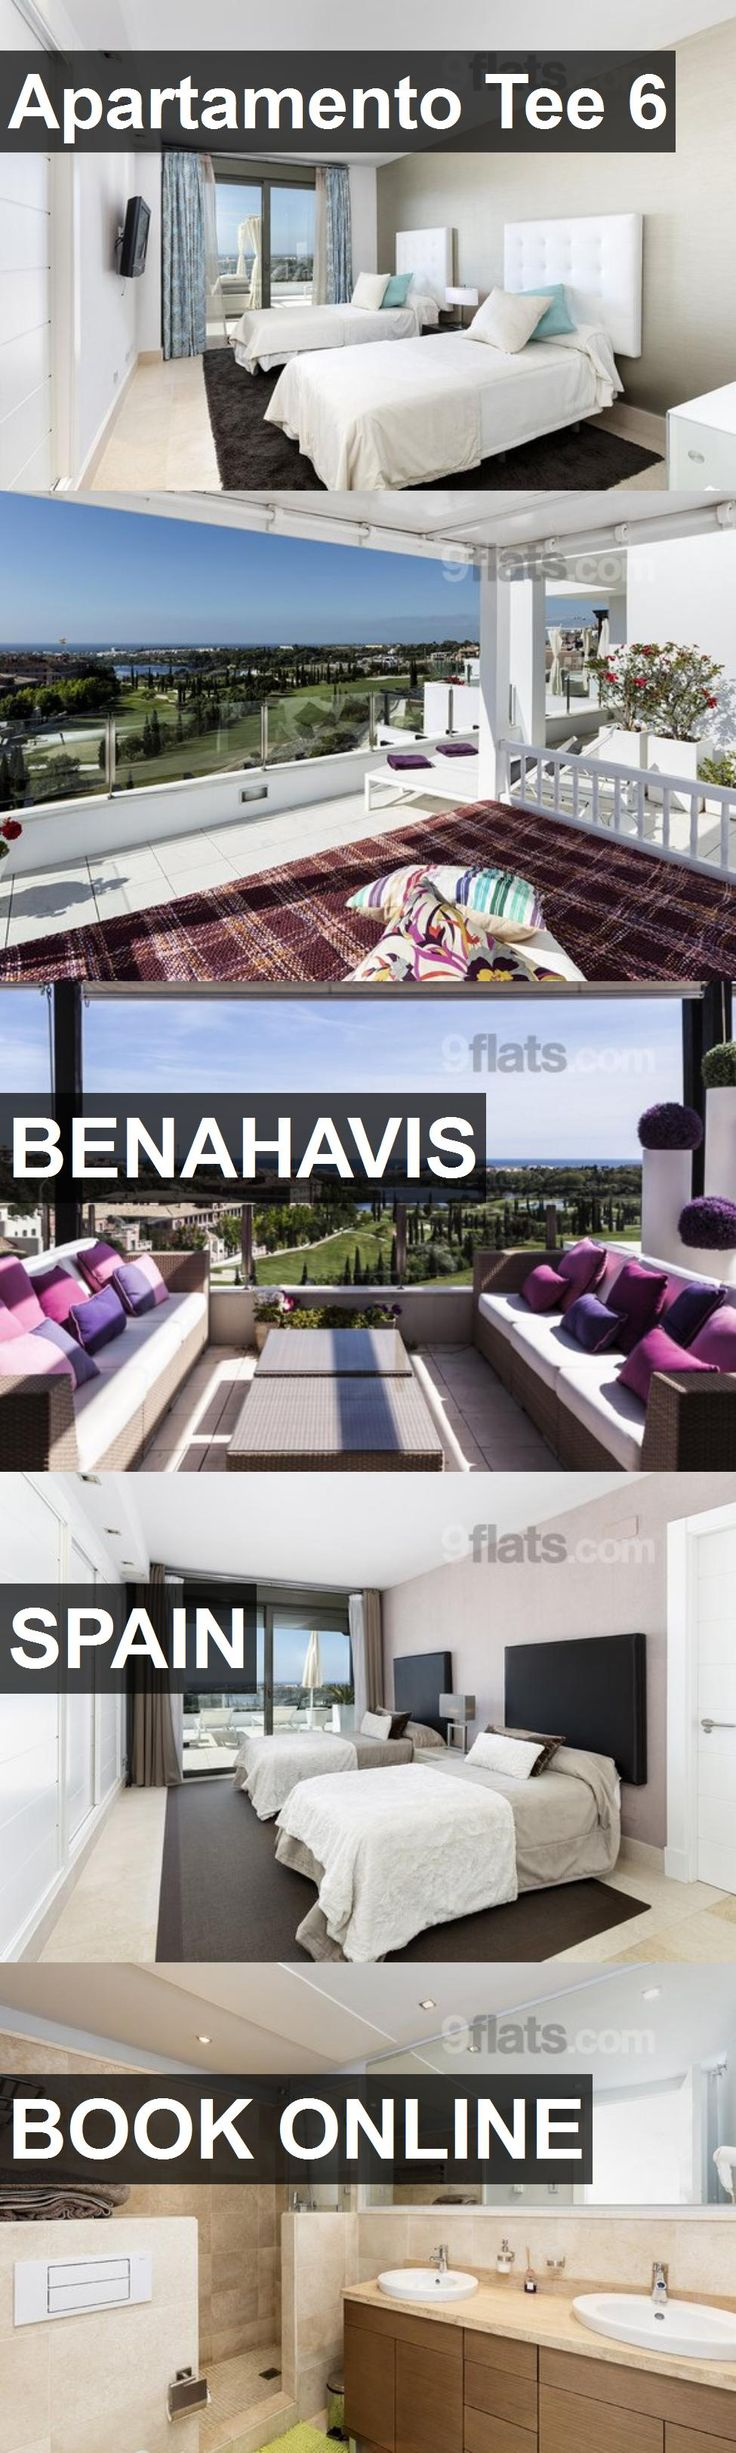 Hotel Apartamento Tee 6 in Benahavis, Spain. For more information, photos, reviews and best prices please follow the link. #Spain #Benahavis #travel #vacation #hotel